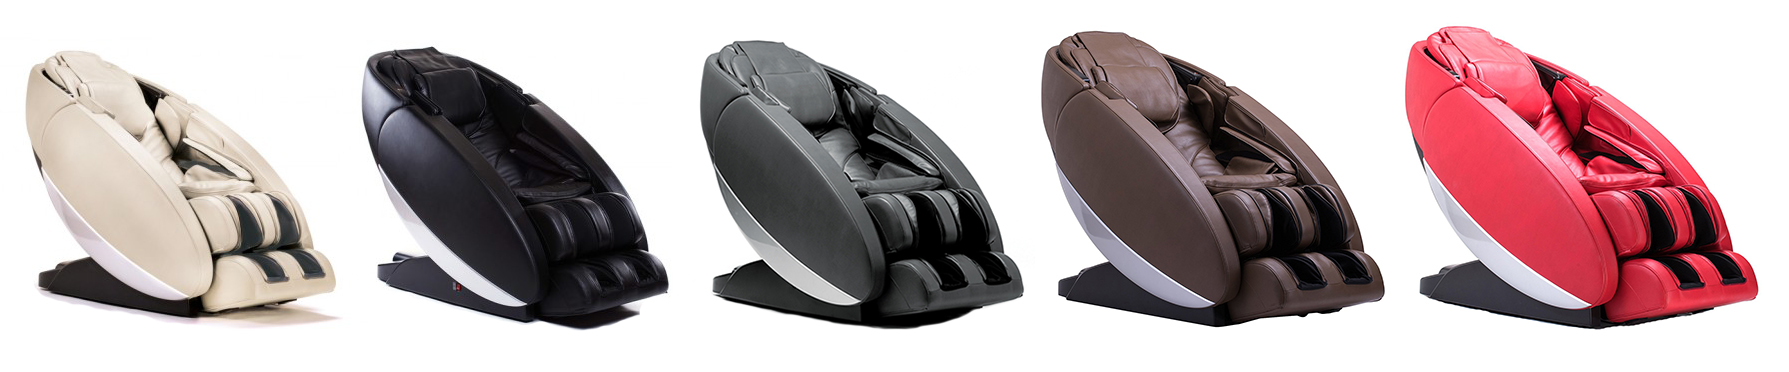 Details About Cream Human Touch Novo XT2 Full Body Zero Gravity Massage  Chair